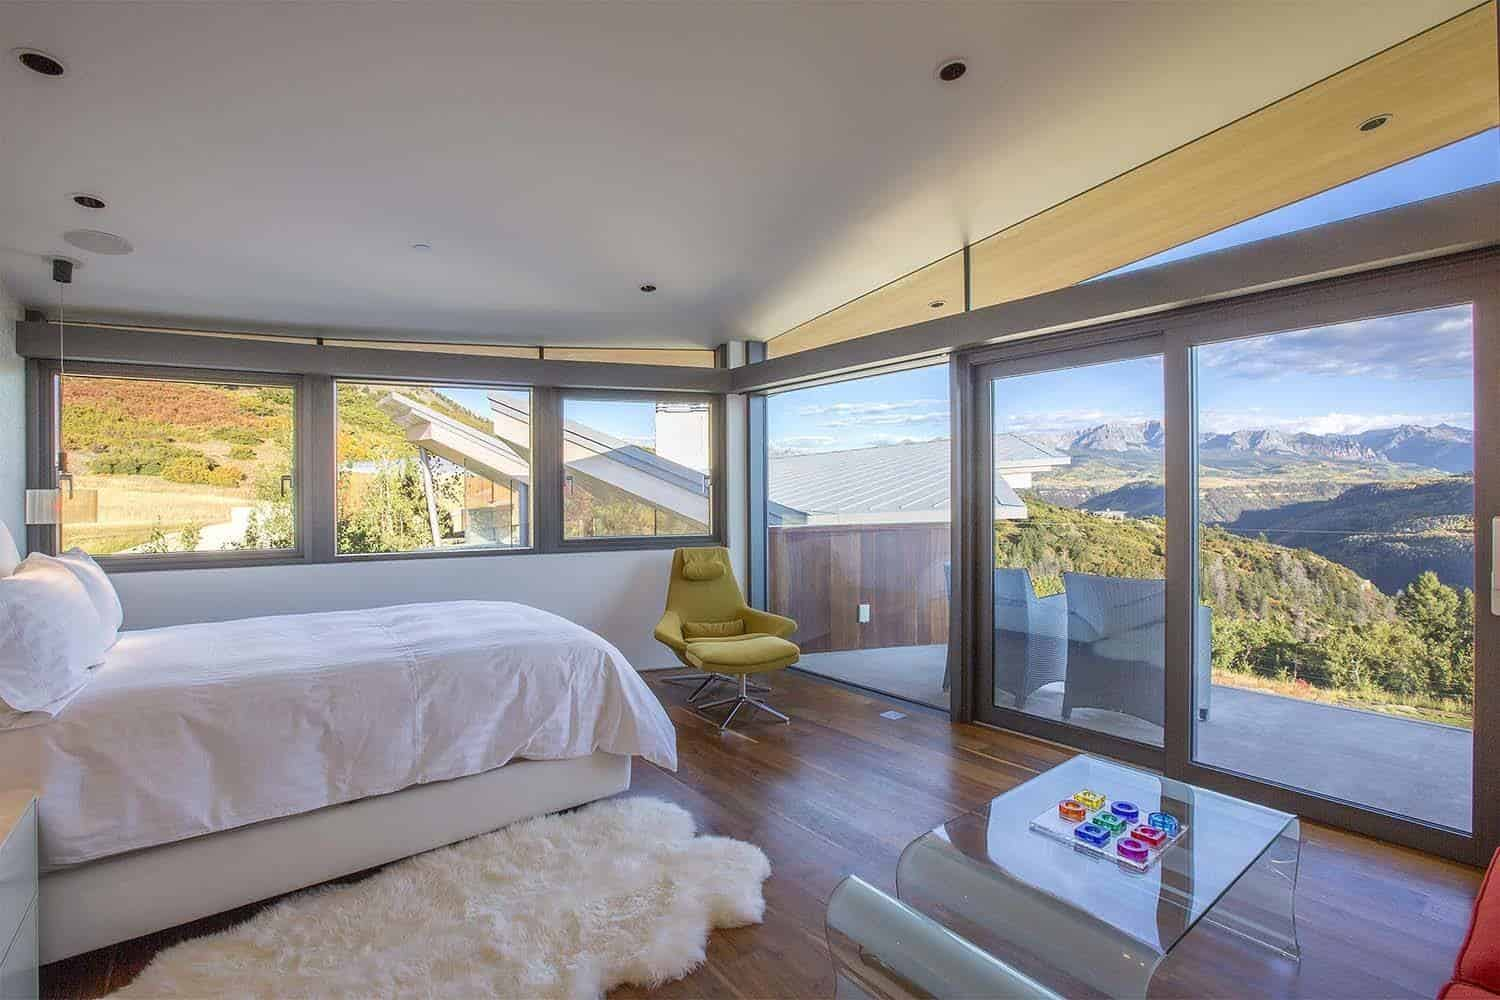 Modern-Residence-Colorado-Poss Architecture-57-1 Kindesign